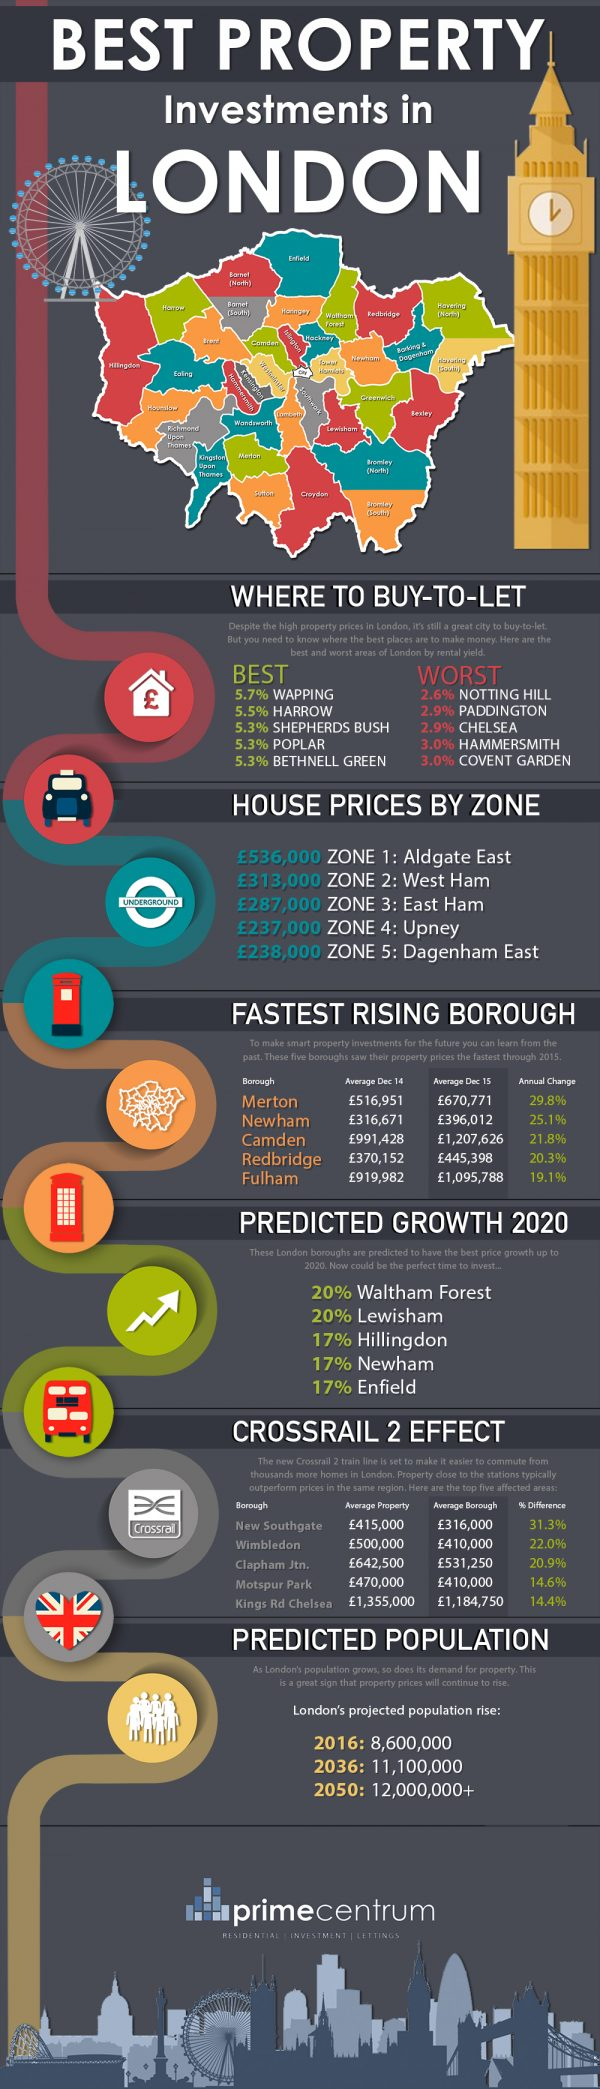 prime-centrum-infographic-london-best-property-investments-updated